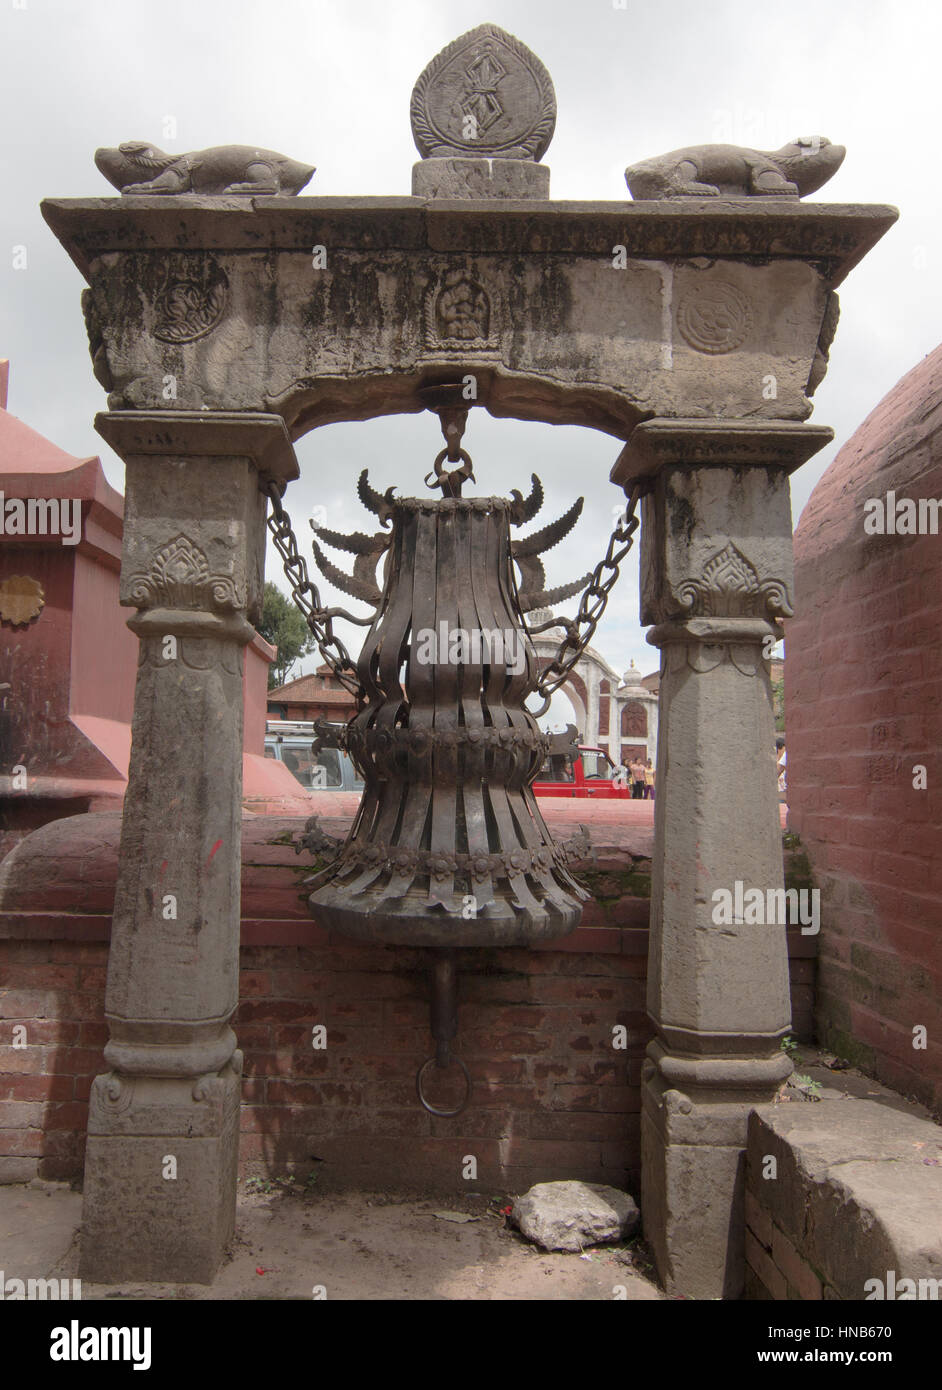 Stylised brass bell outside a Hindu temple in Bhaktapur, Kathmandu, used  for religious ceremonies - Stock Image